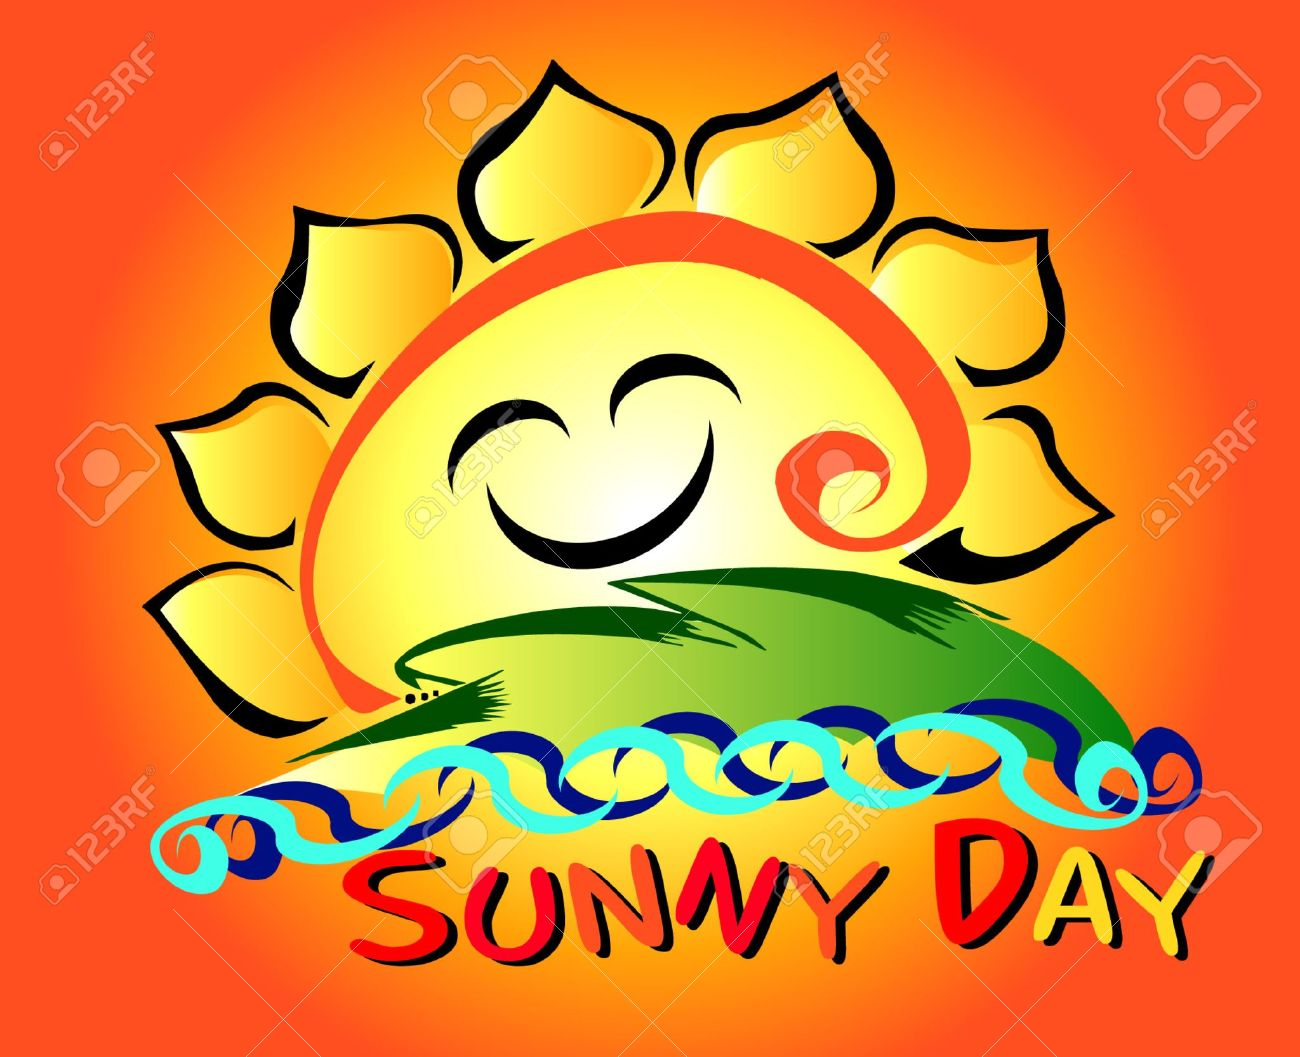 Sunny Day Clipart - ClipArt Best